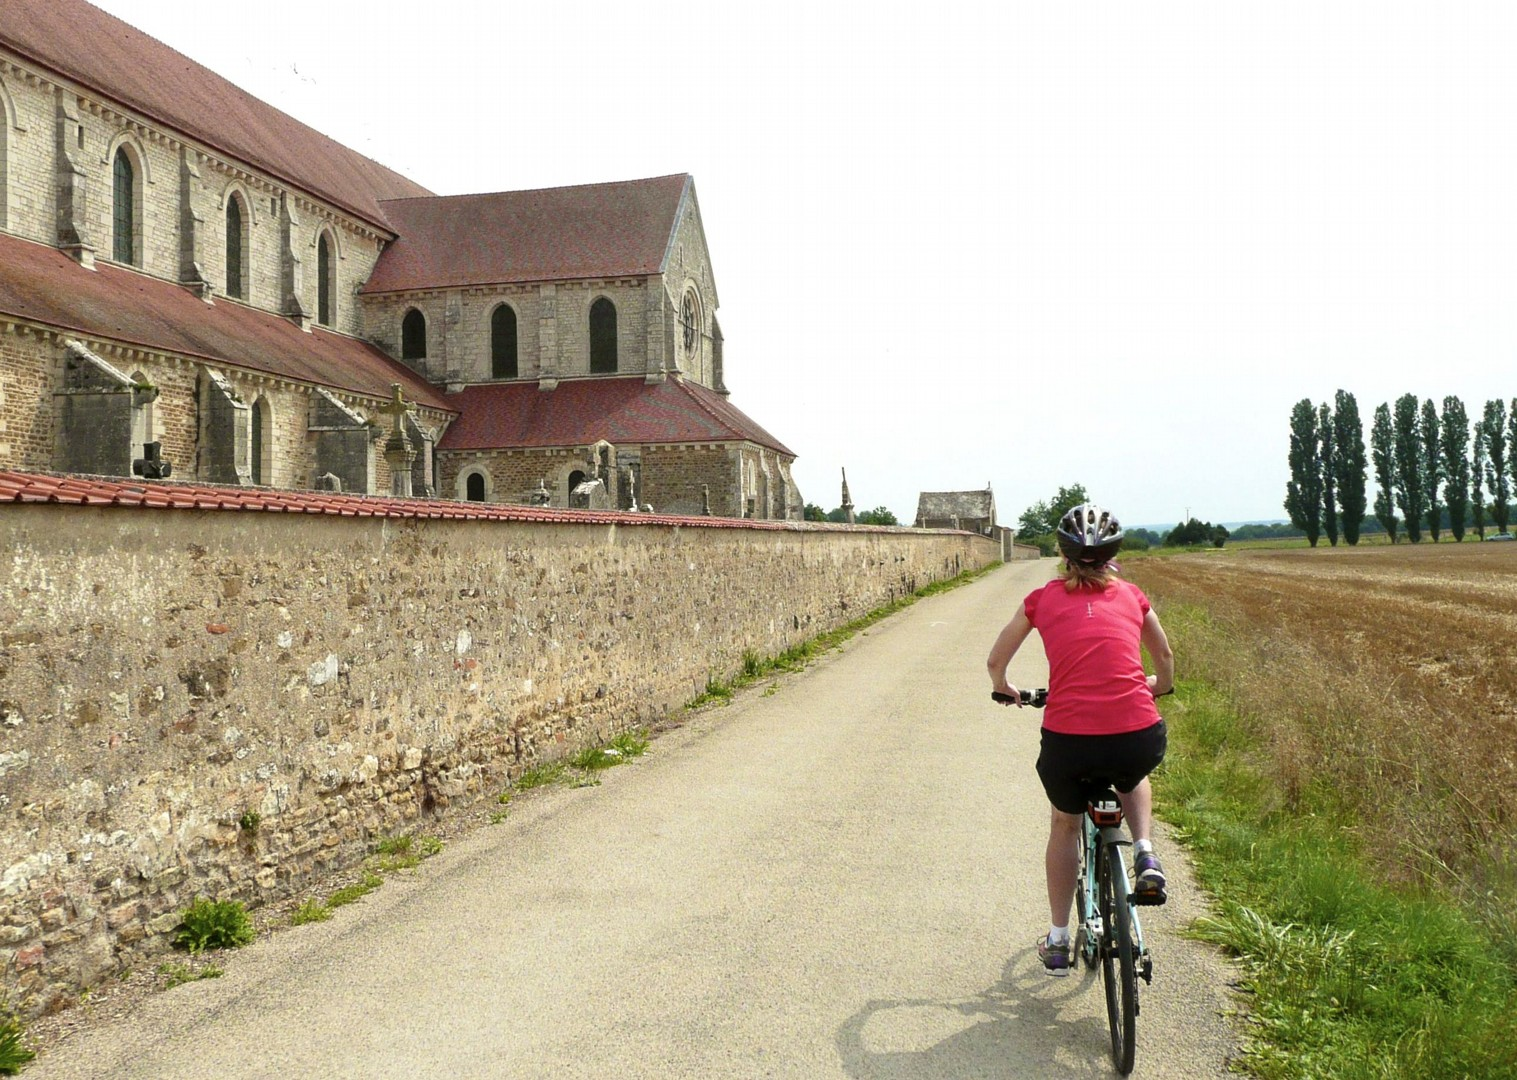 auxerre-self-guided-leisure-cycling-holiday-france.jpg - France - Burgundy - Caves and Canals - Self-Guided Leisure Cycling Holiday - Leisure Cycling